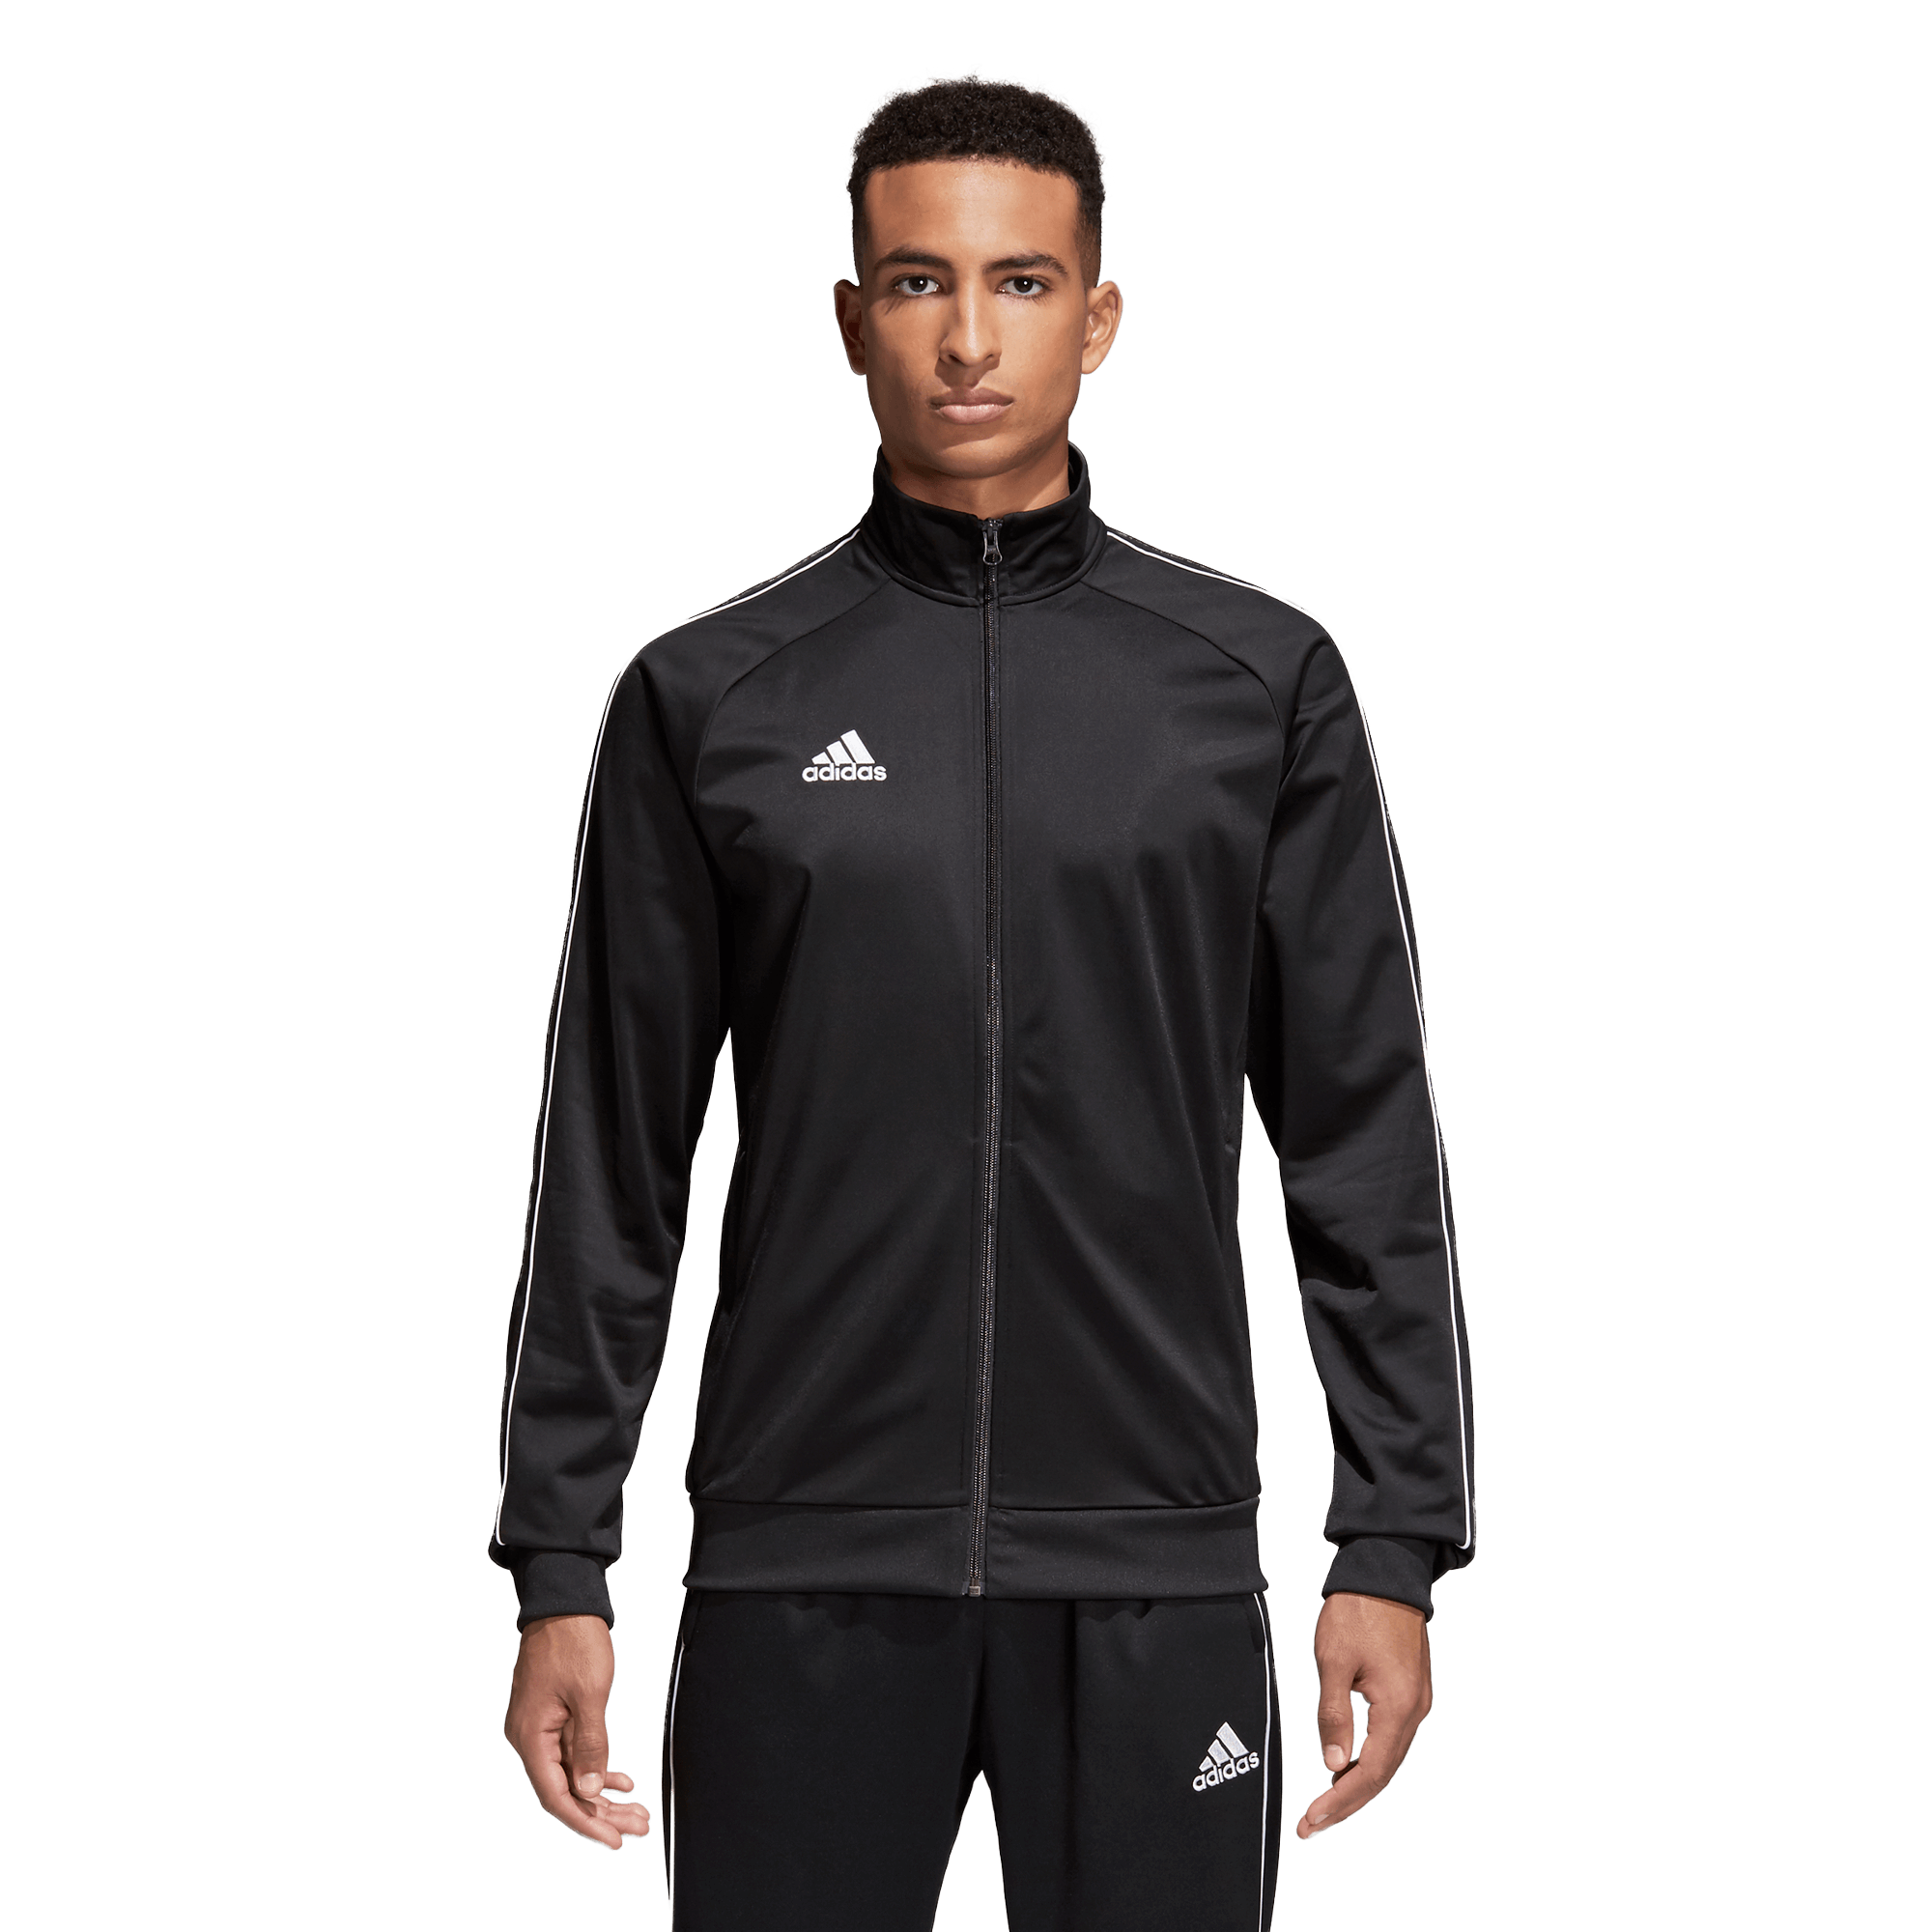 adidas Core 18 Trainingsjack